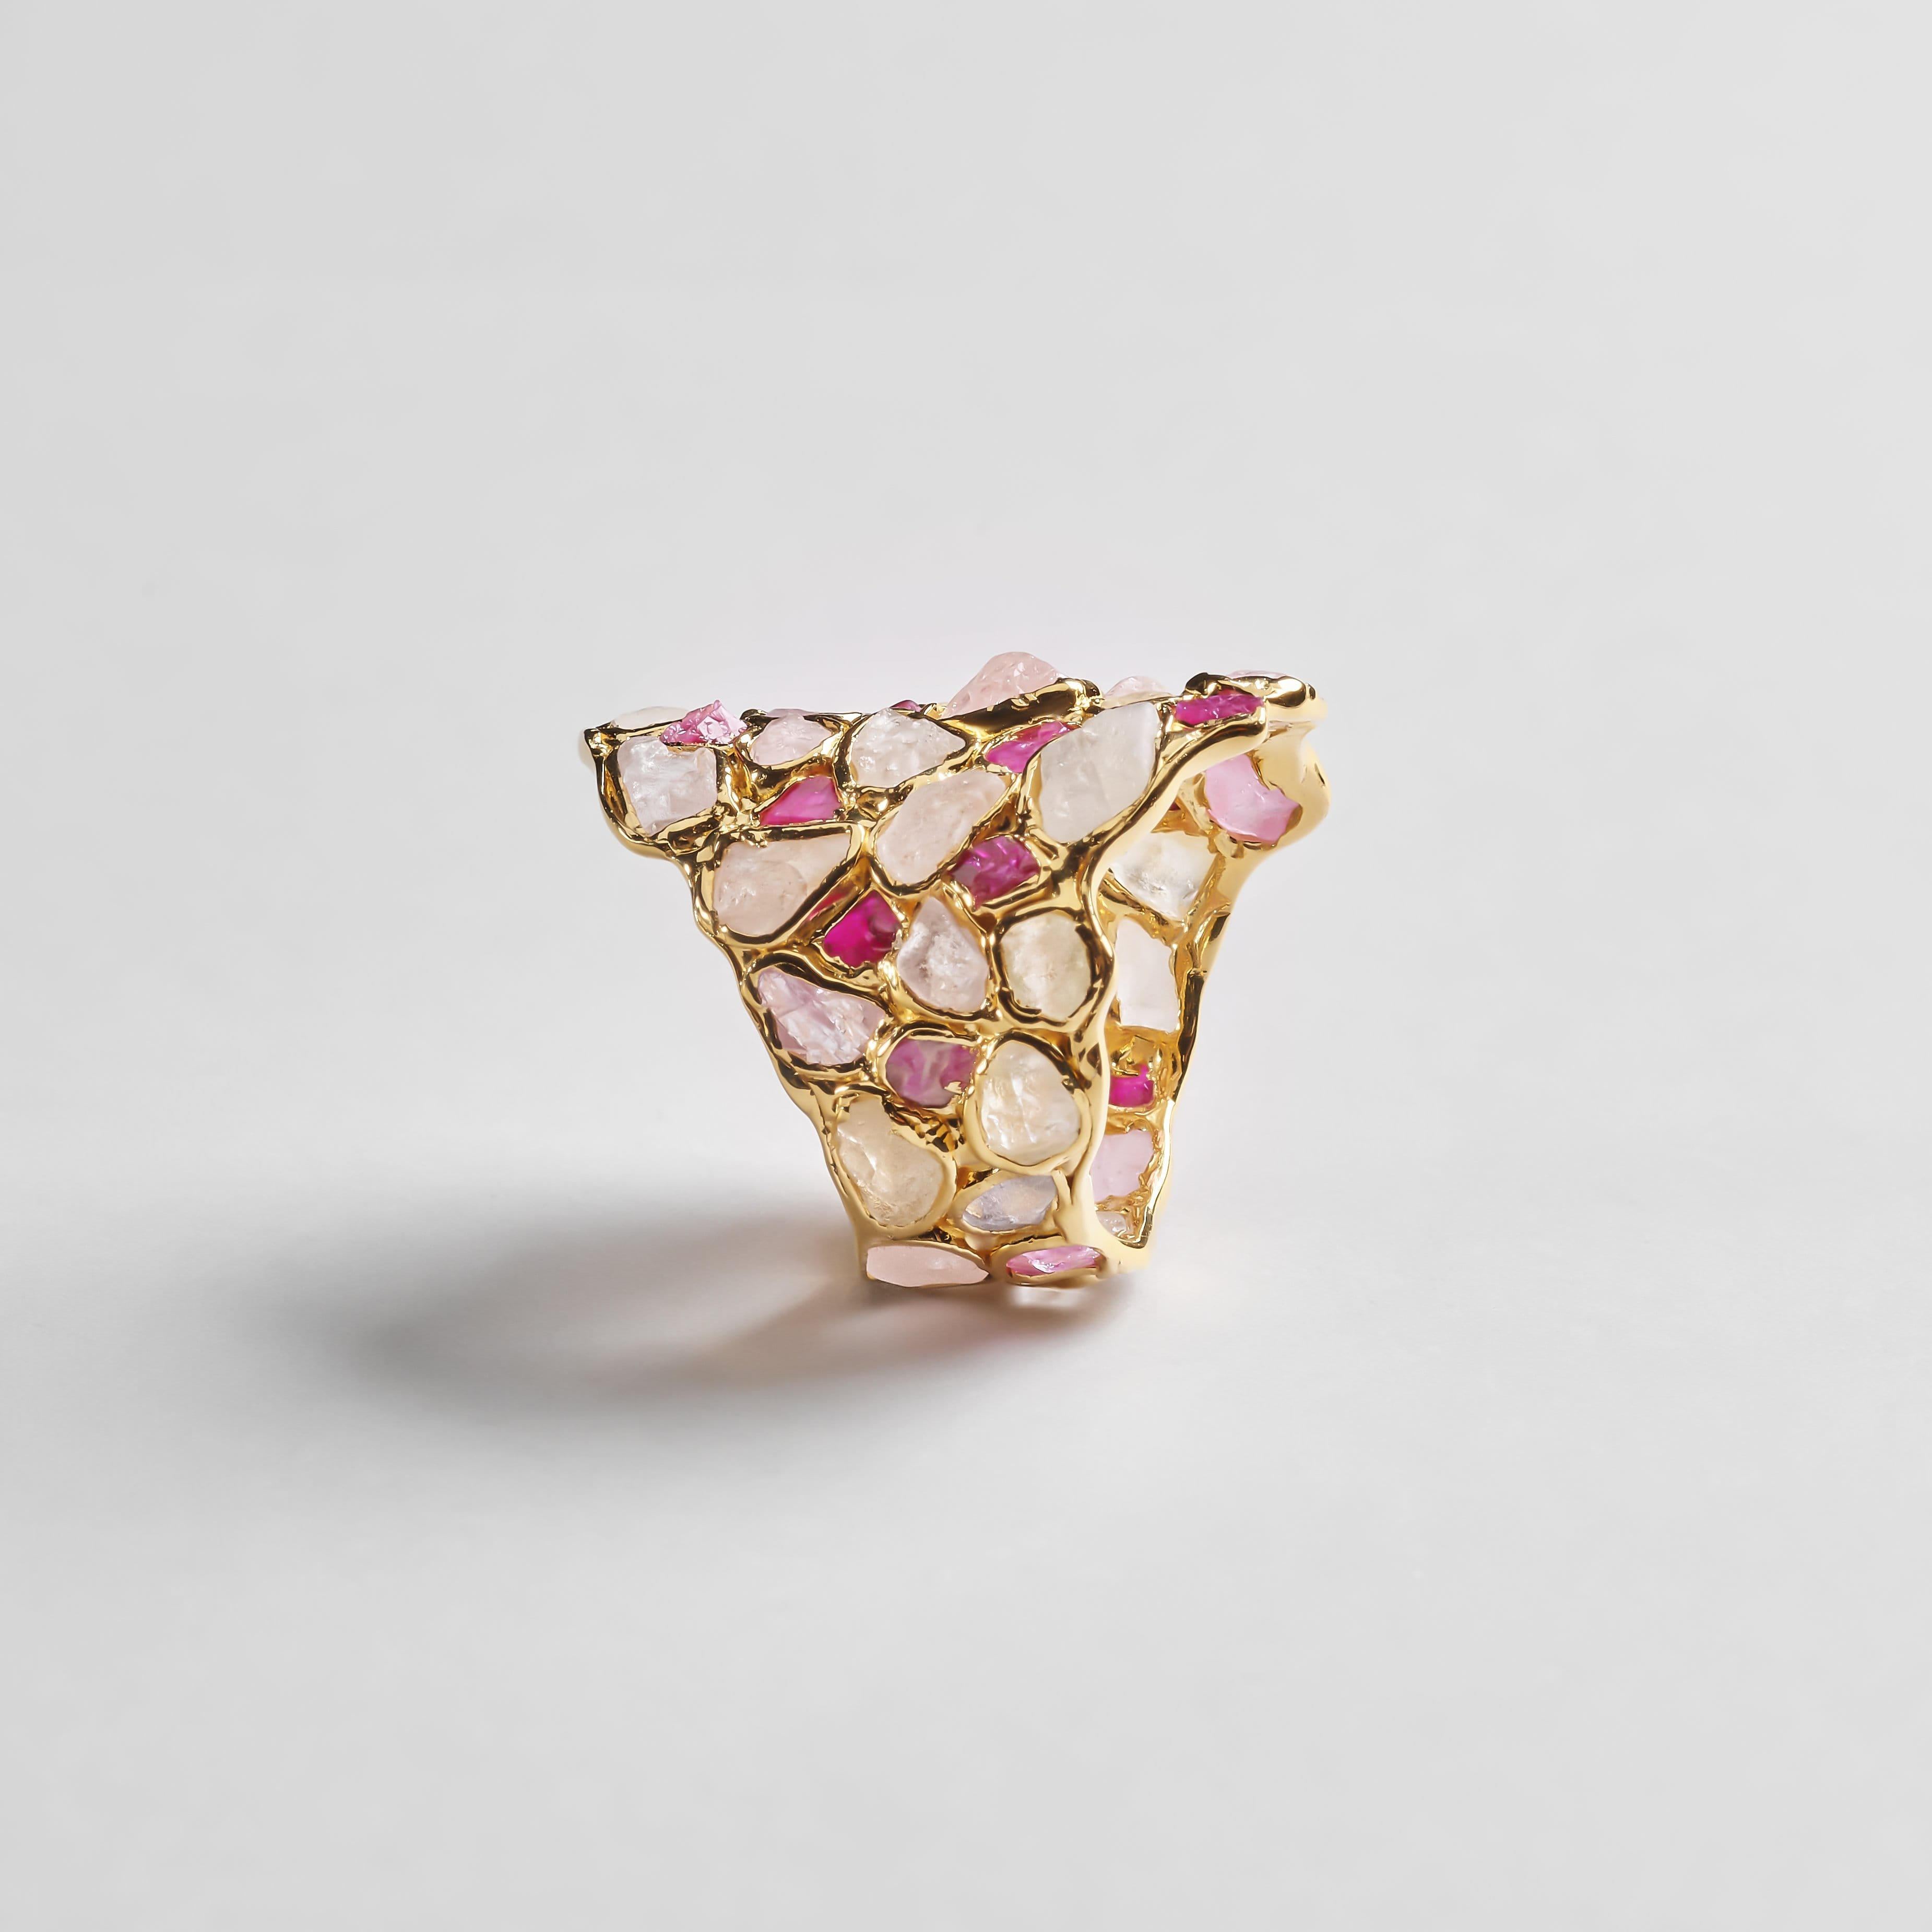 Nerissa Ring, Gold, Handmade, Ruby, Sapphire, spo-disabled, StoneColor:Pink, Style:Everyday, Type:StainedGlass Ring